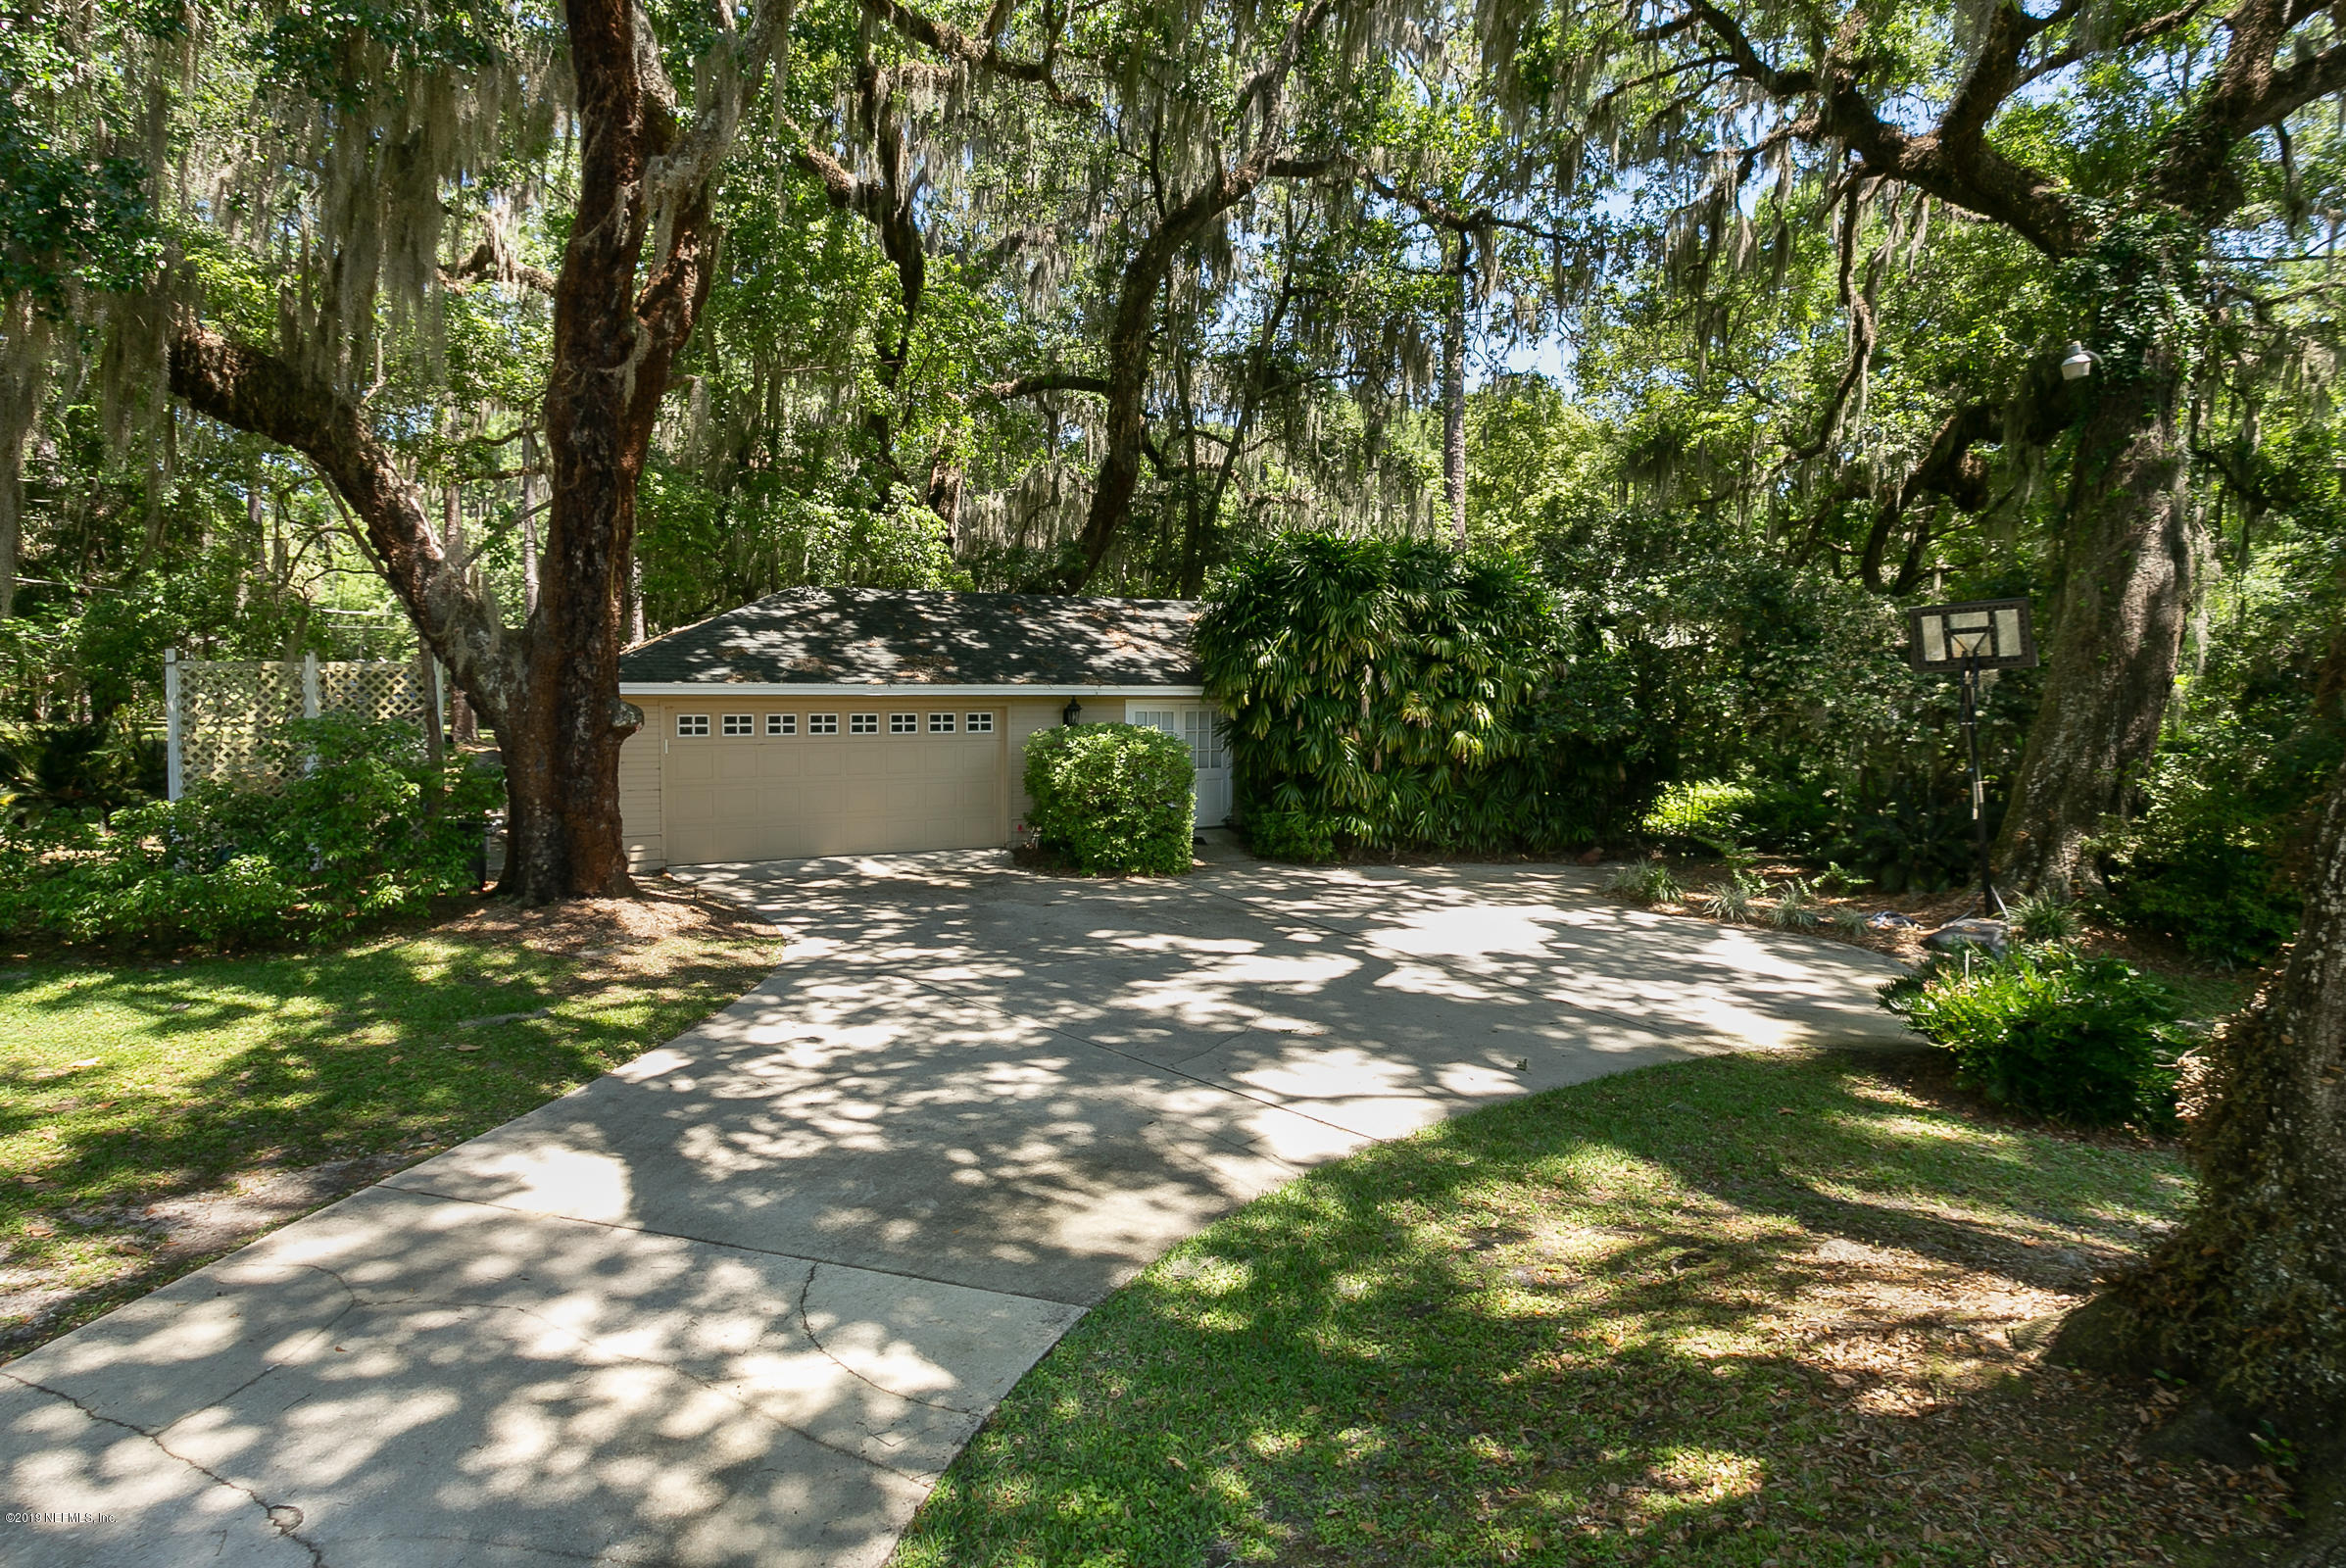 644 FREDERIC, FLEMING ISLAND, FLORIDA 32003, 3 Bedrooms Bedrooms, ,3 BathroomsBathrooms,Residential,For sale,FREDERIC,1029862